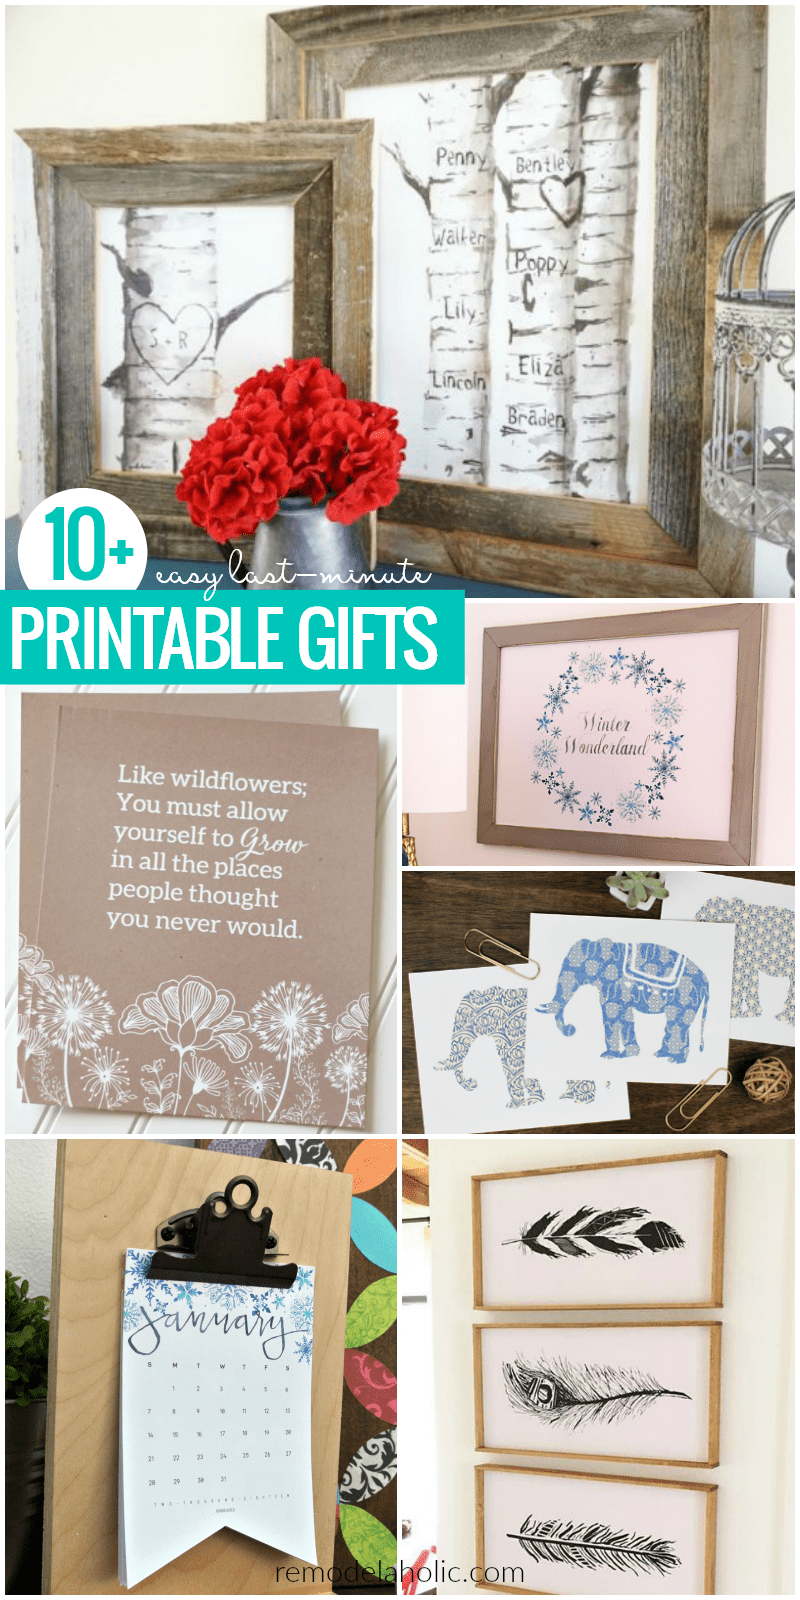 image about Printable Gifts titled Remodelaholic Closing-Second Free of charge Printable Present Tips +